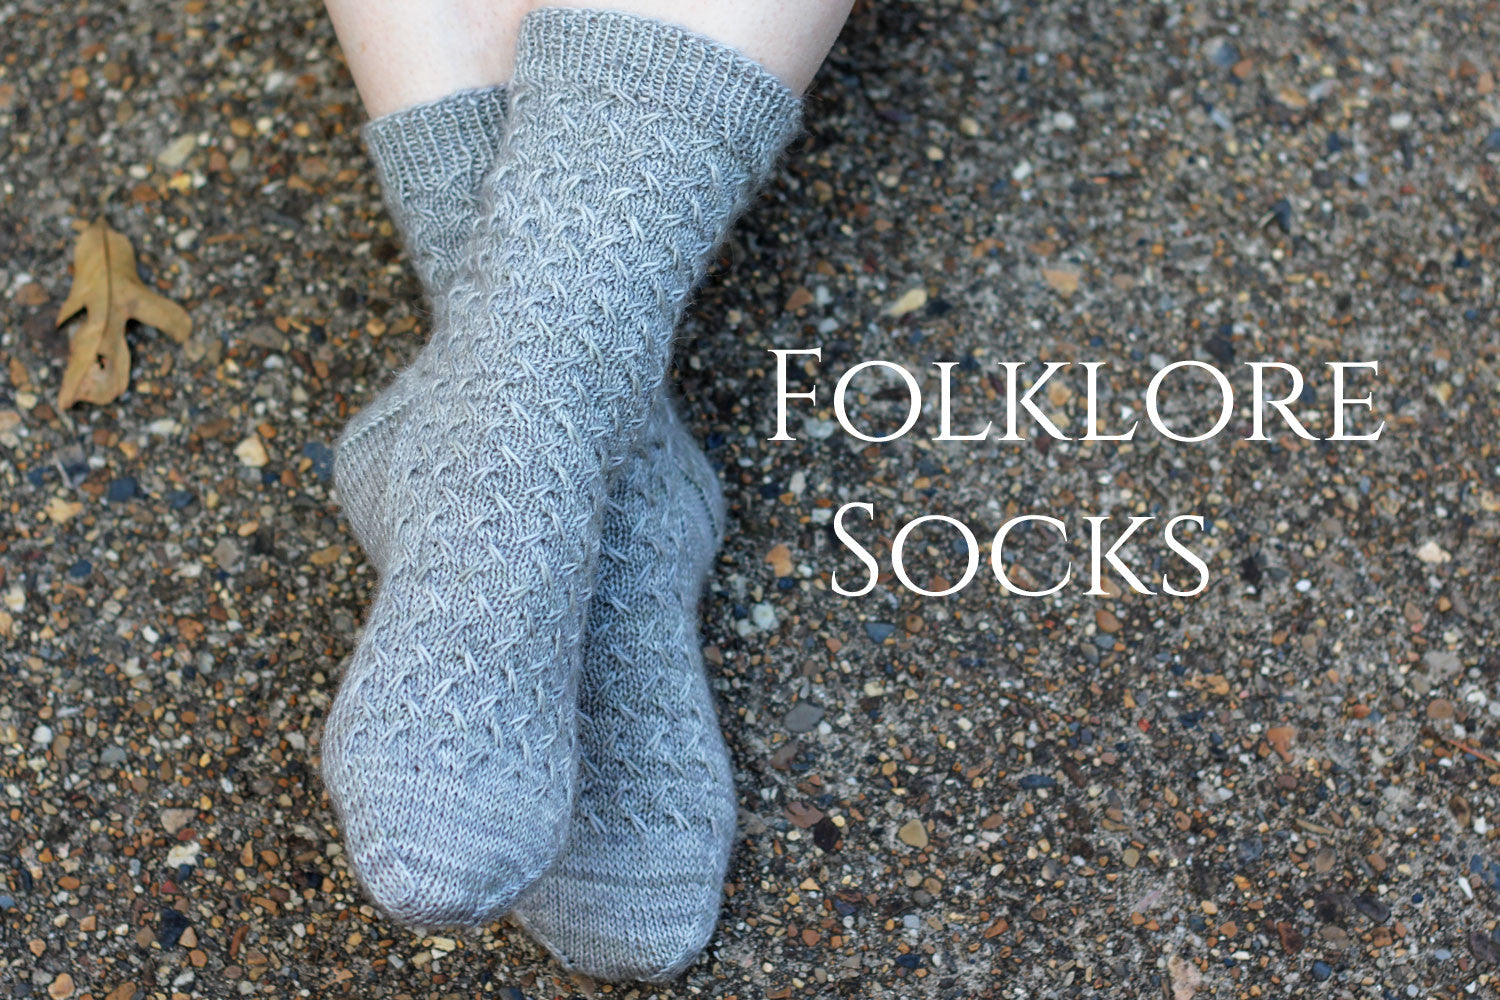 folklore socks